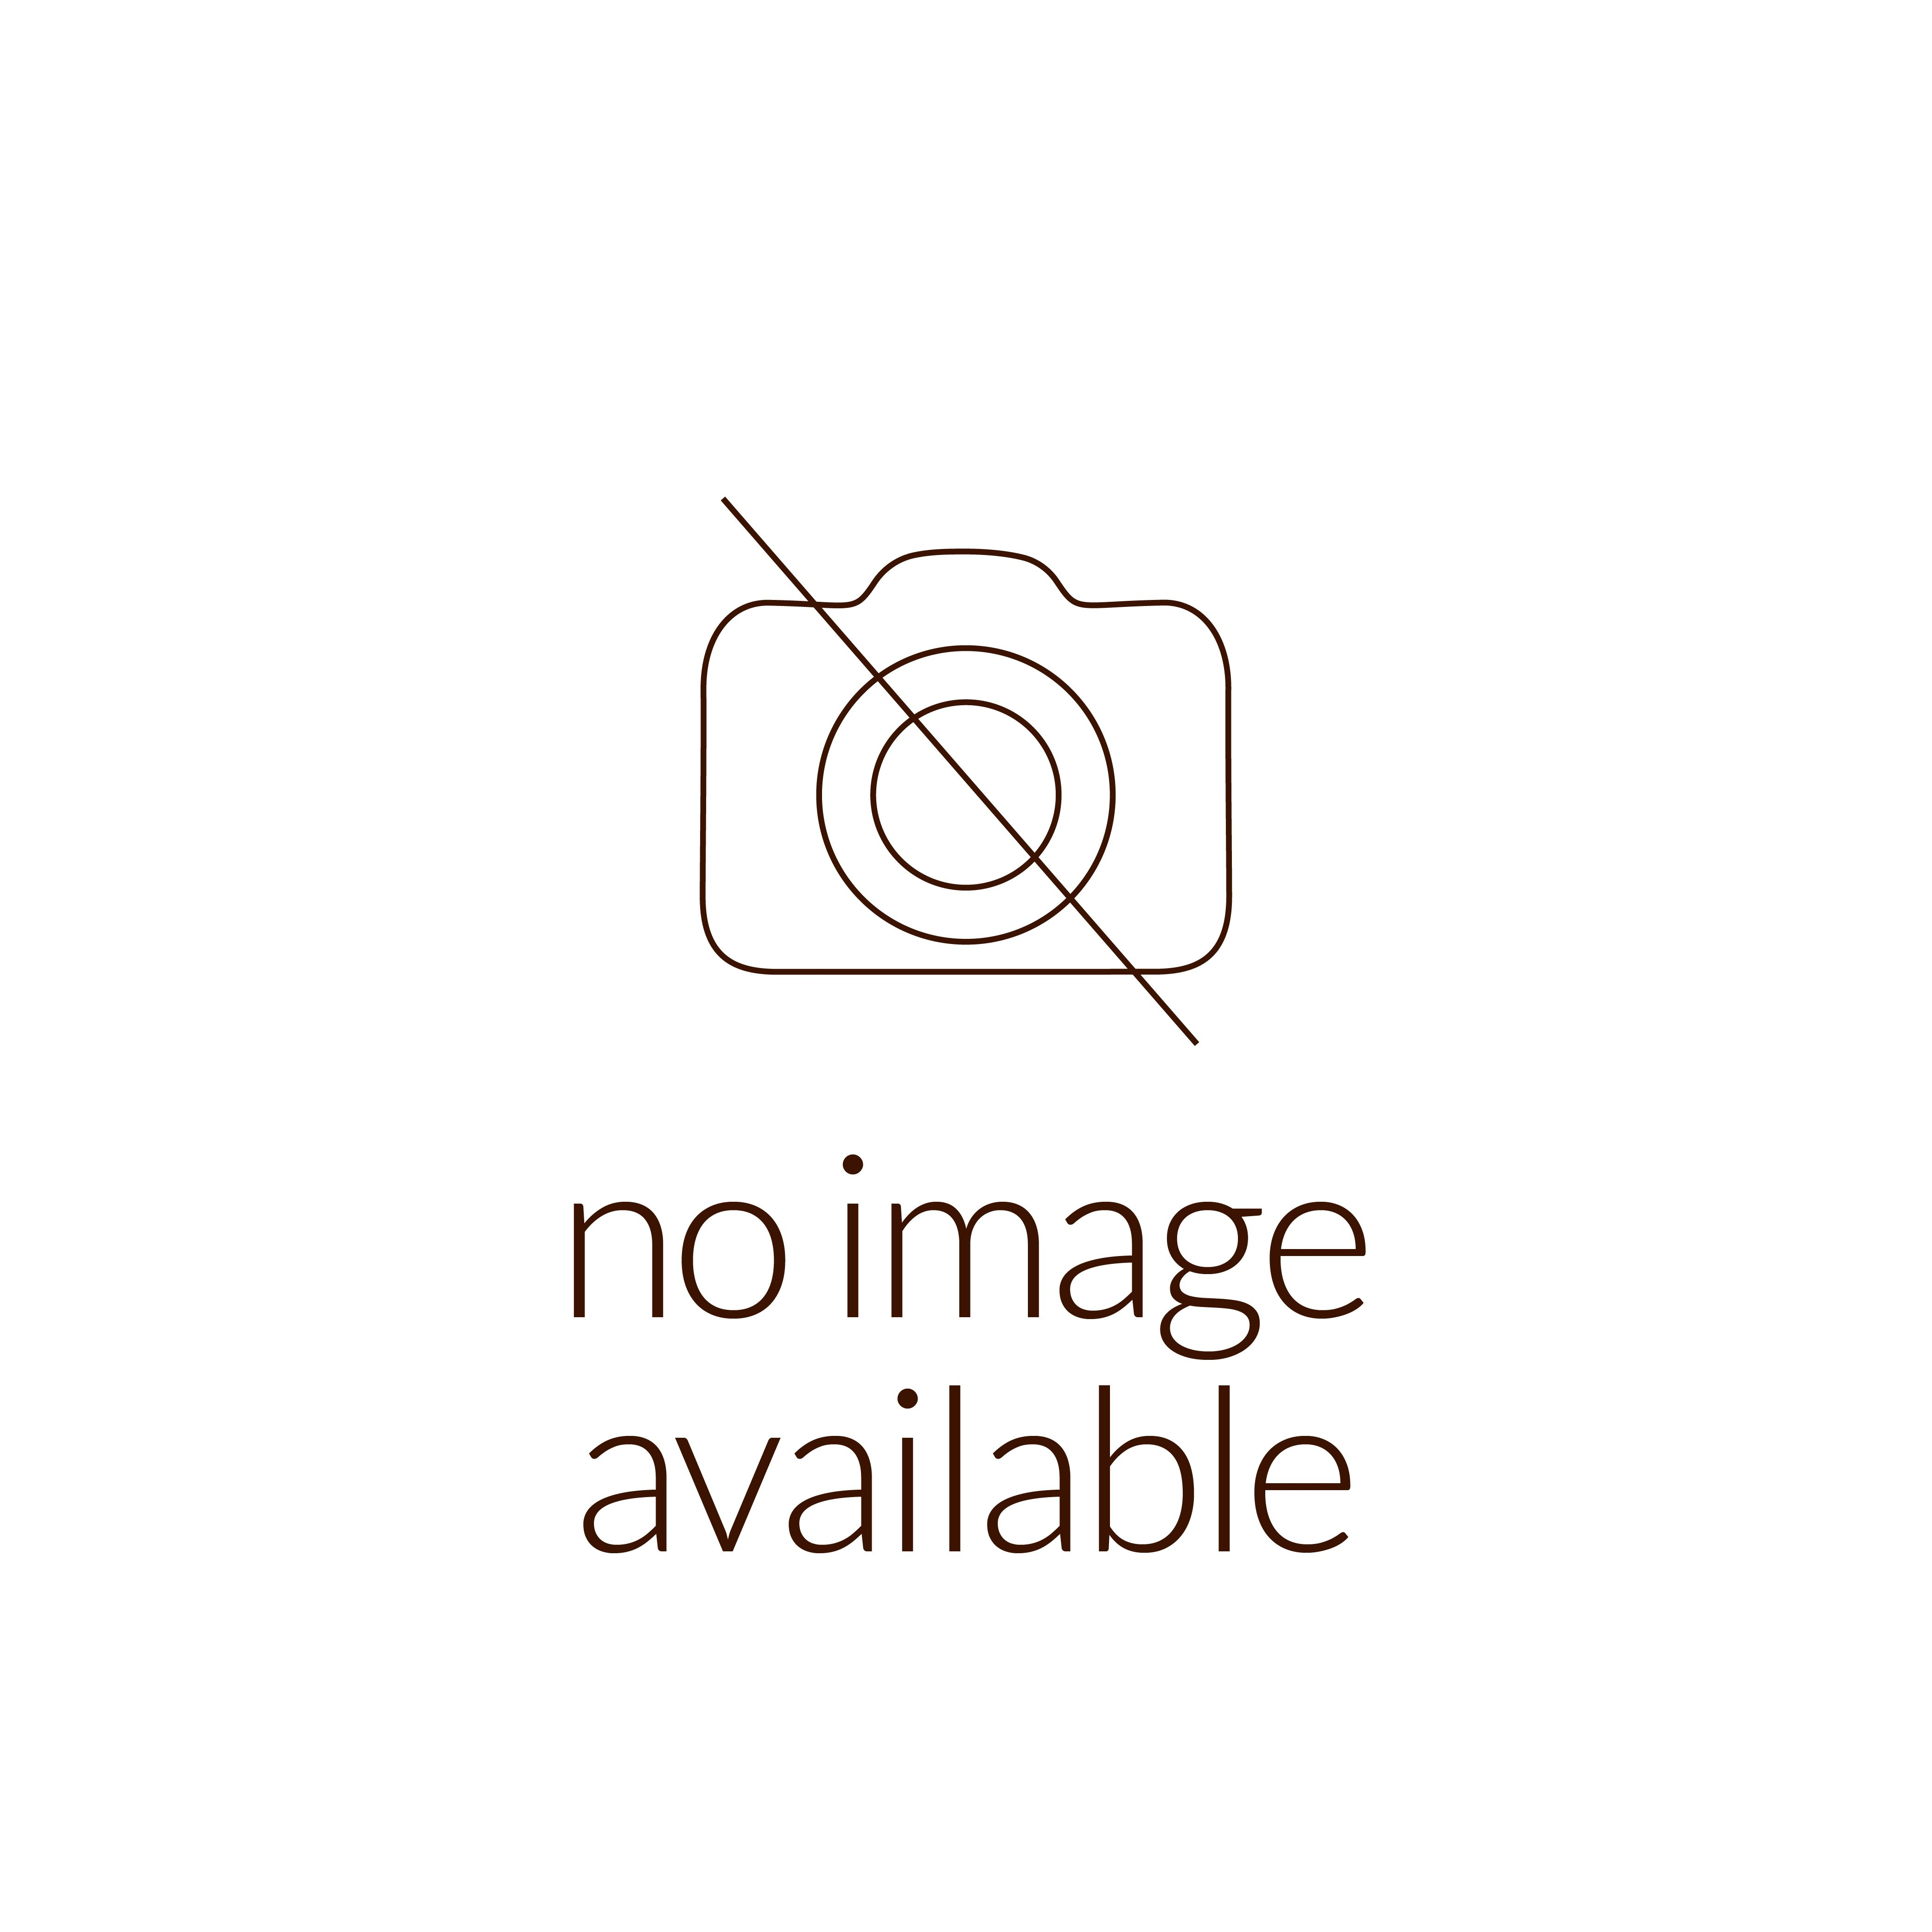 Jerusalem Reunited 40th Anniversary - 30.5 mm, 17 g, Gold/585 Proof Medal